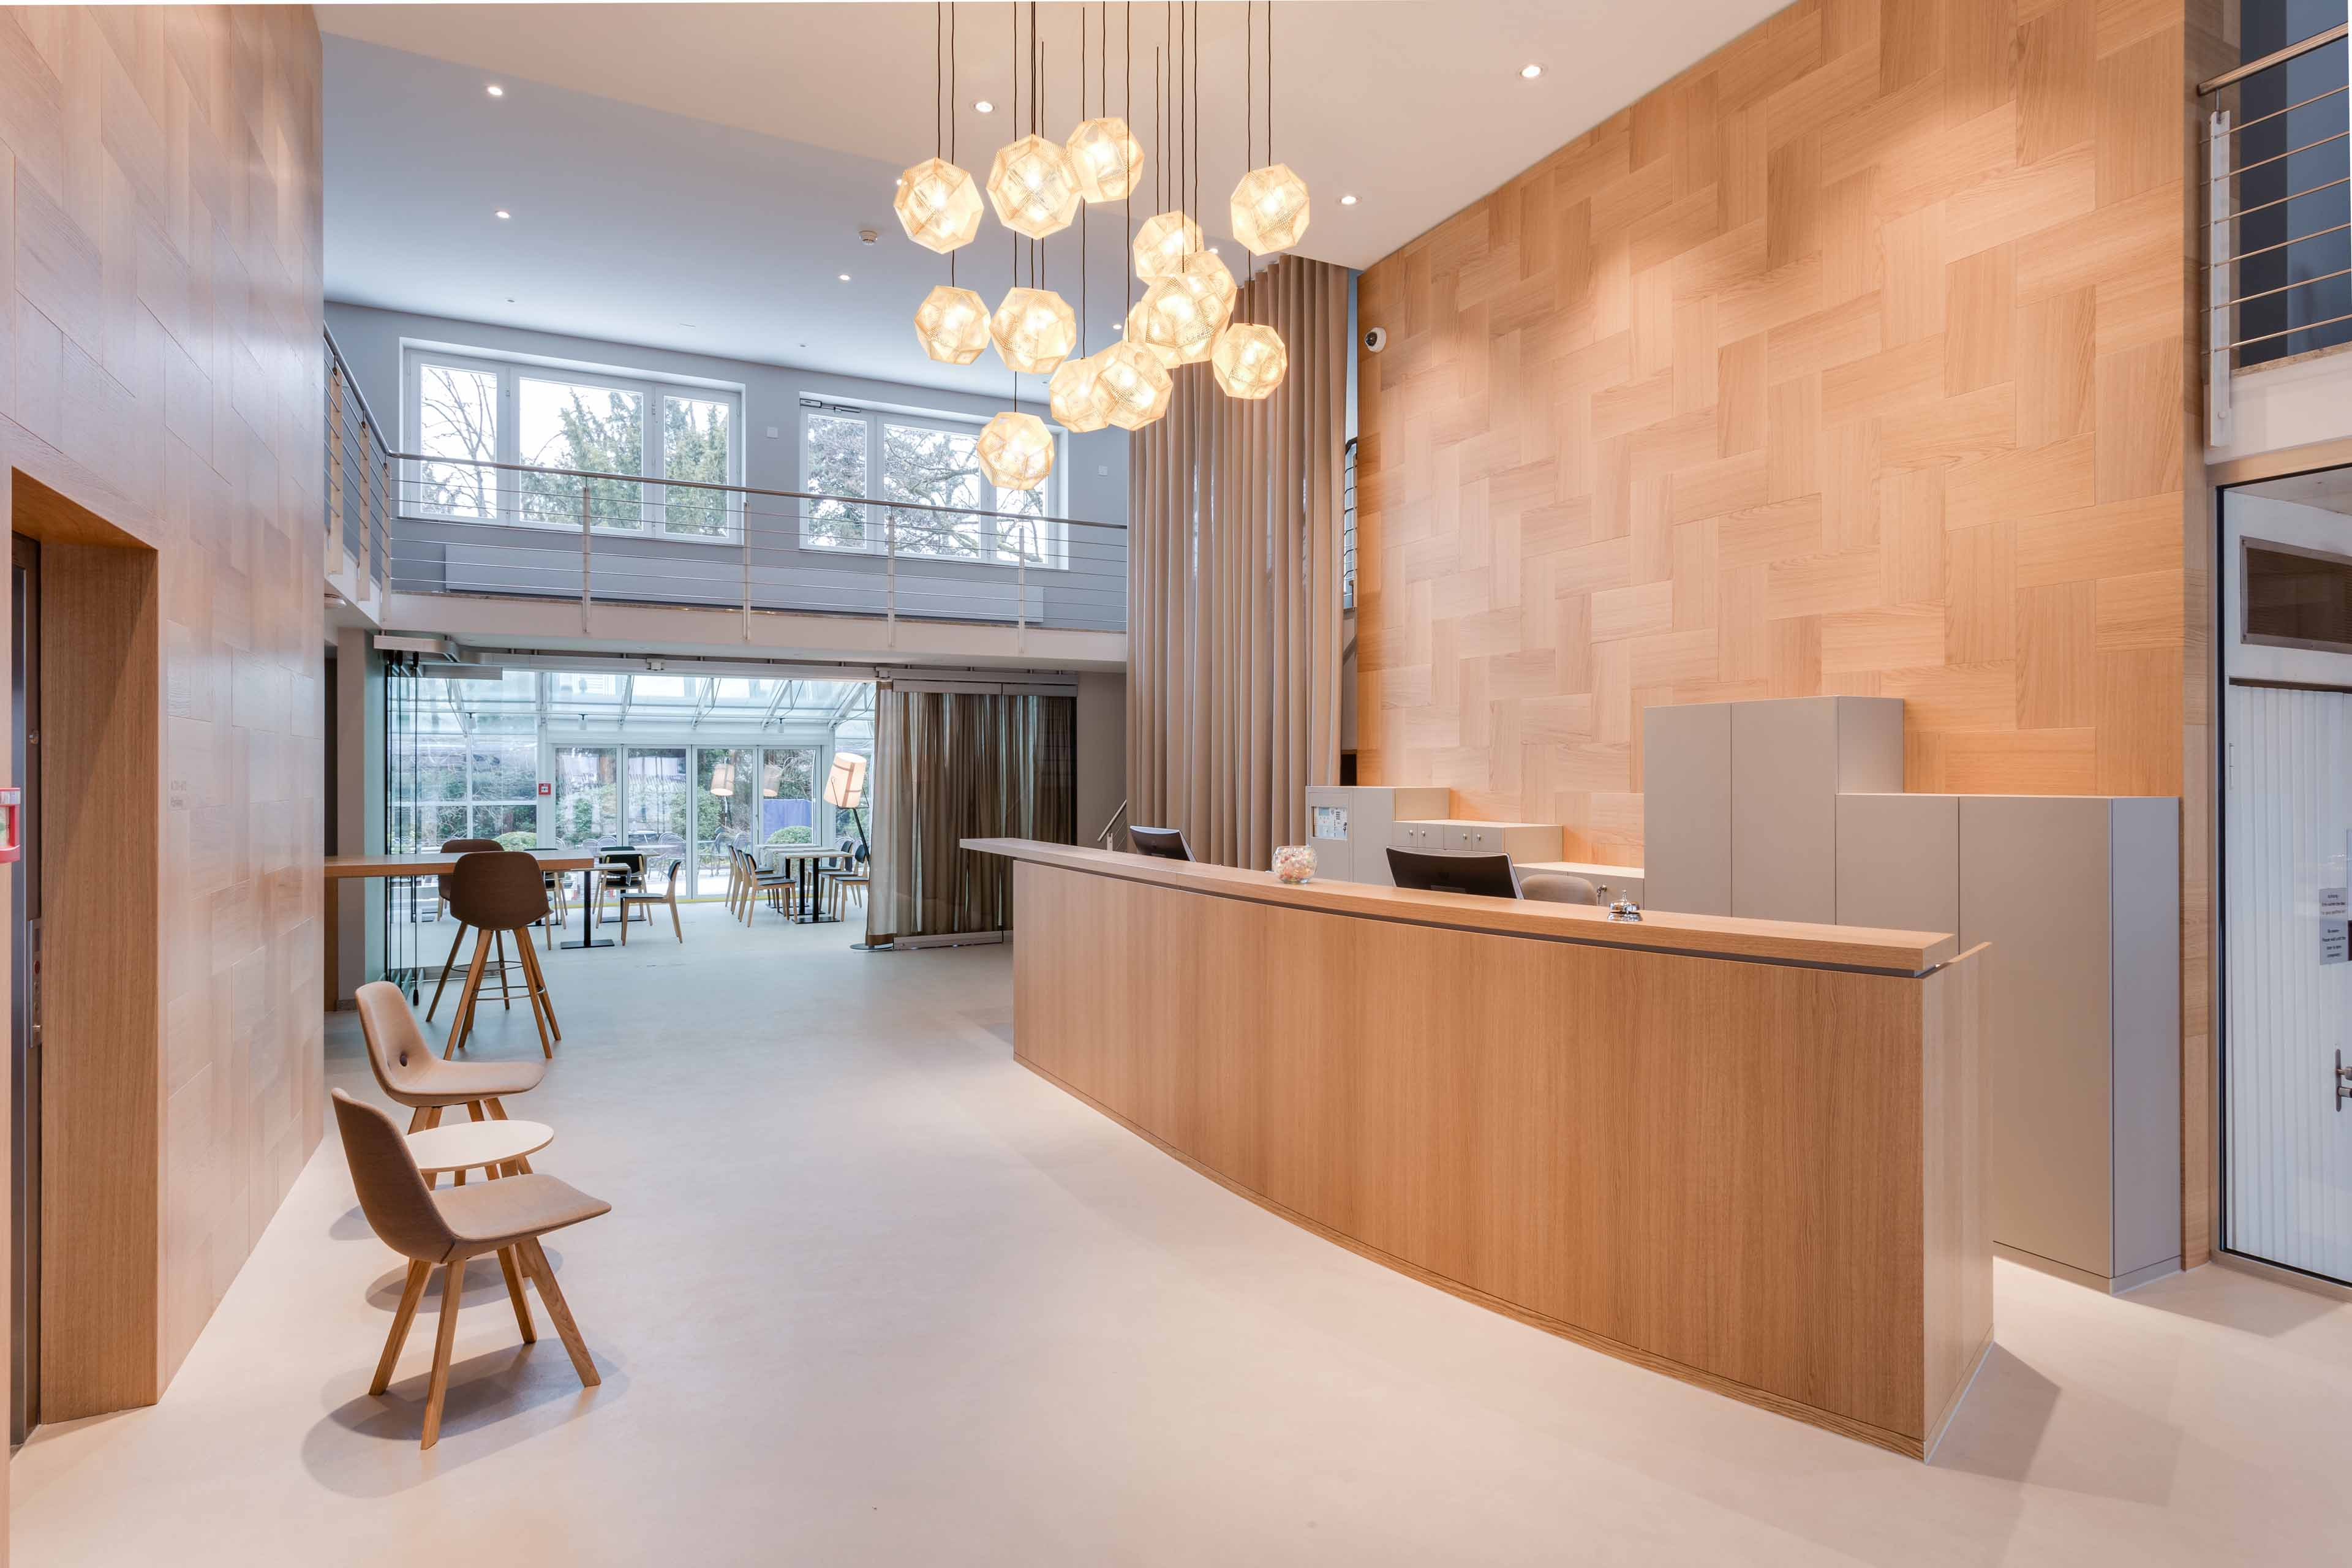 Hotel wettstein ganter for Design hotels ag